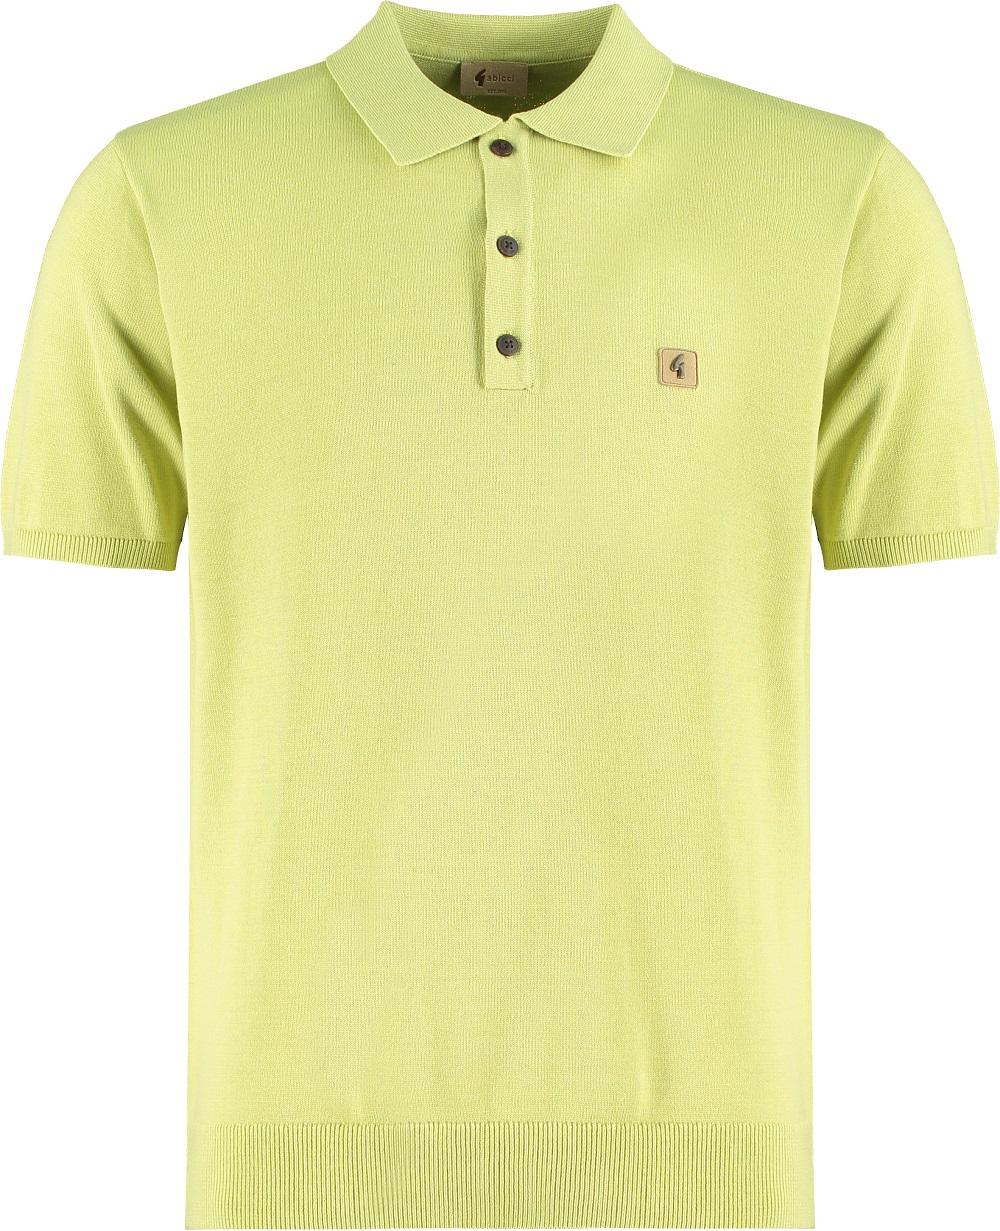 Gabicci Vintage 3 Button Plain Knit Polo Green